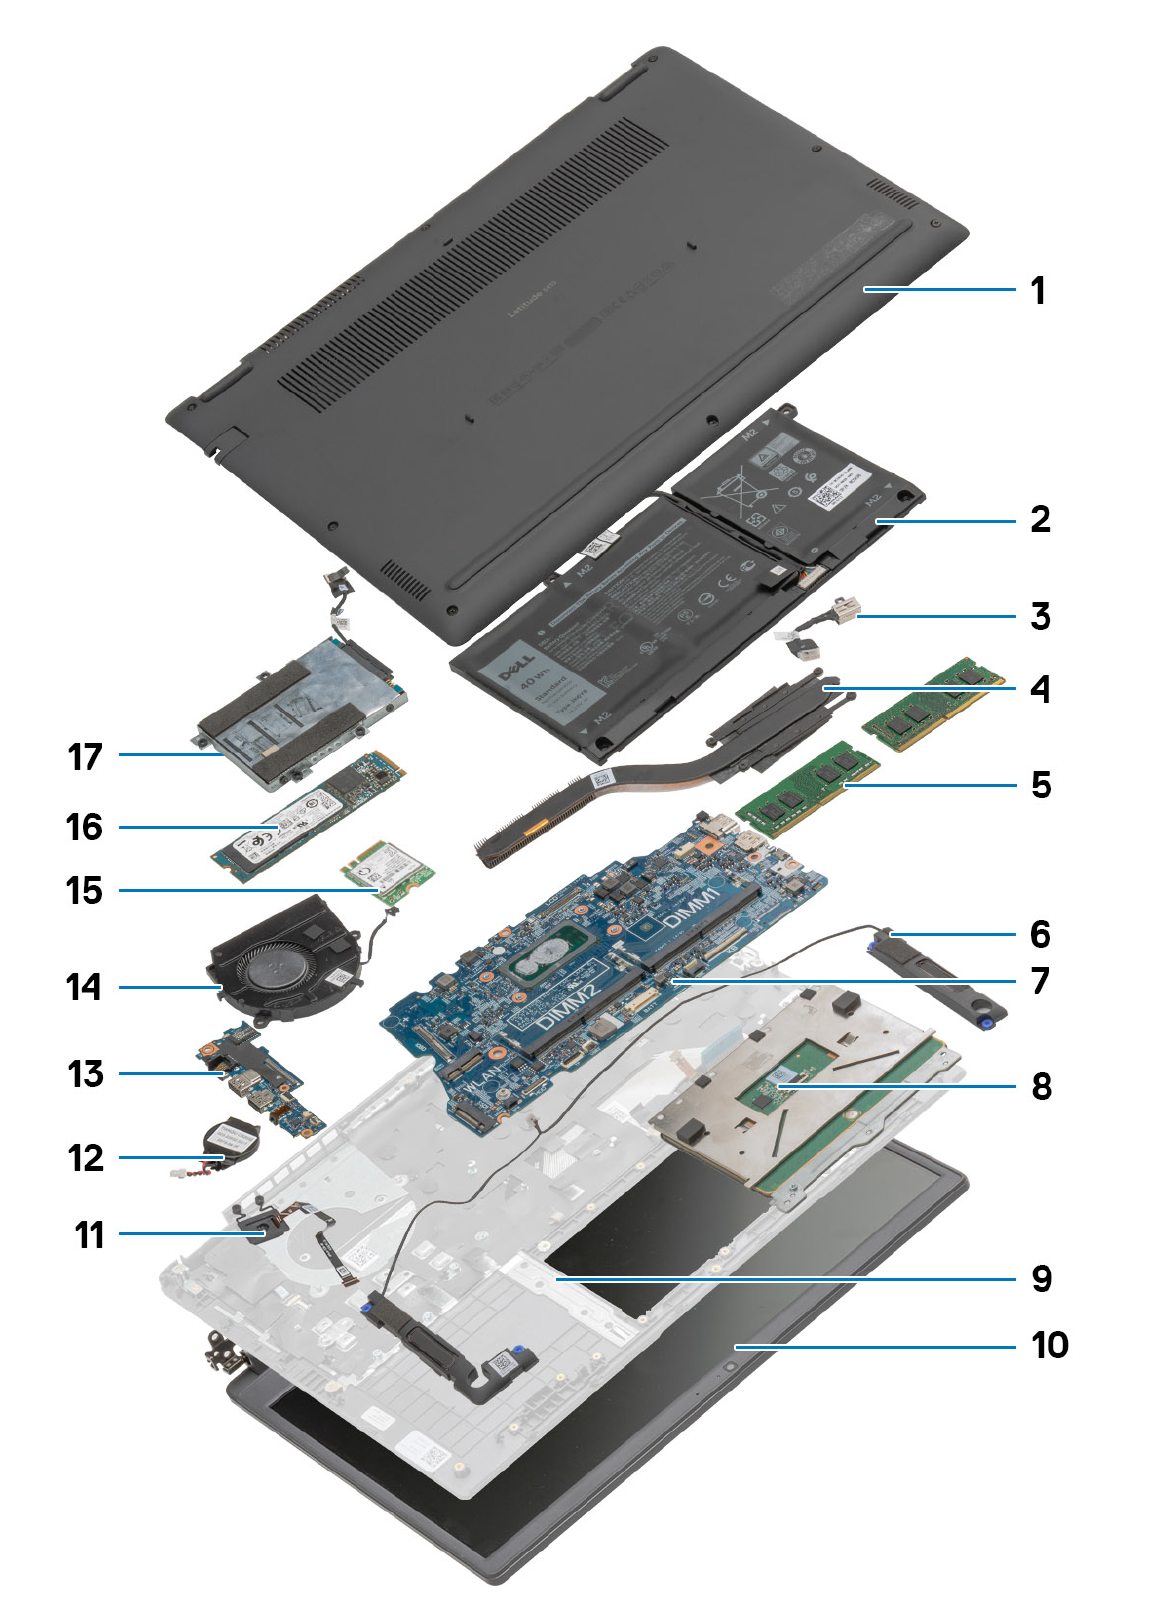 Dell Latitude 3410 Exploded View